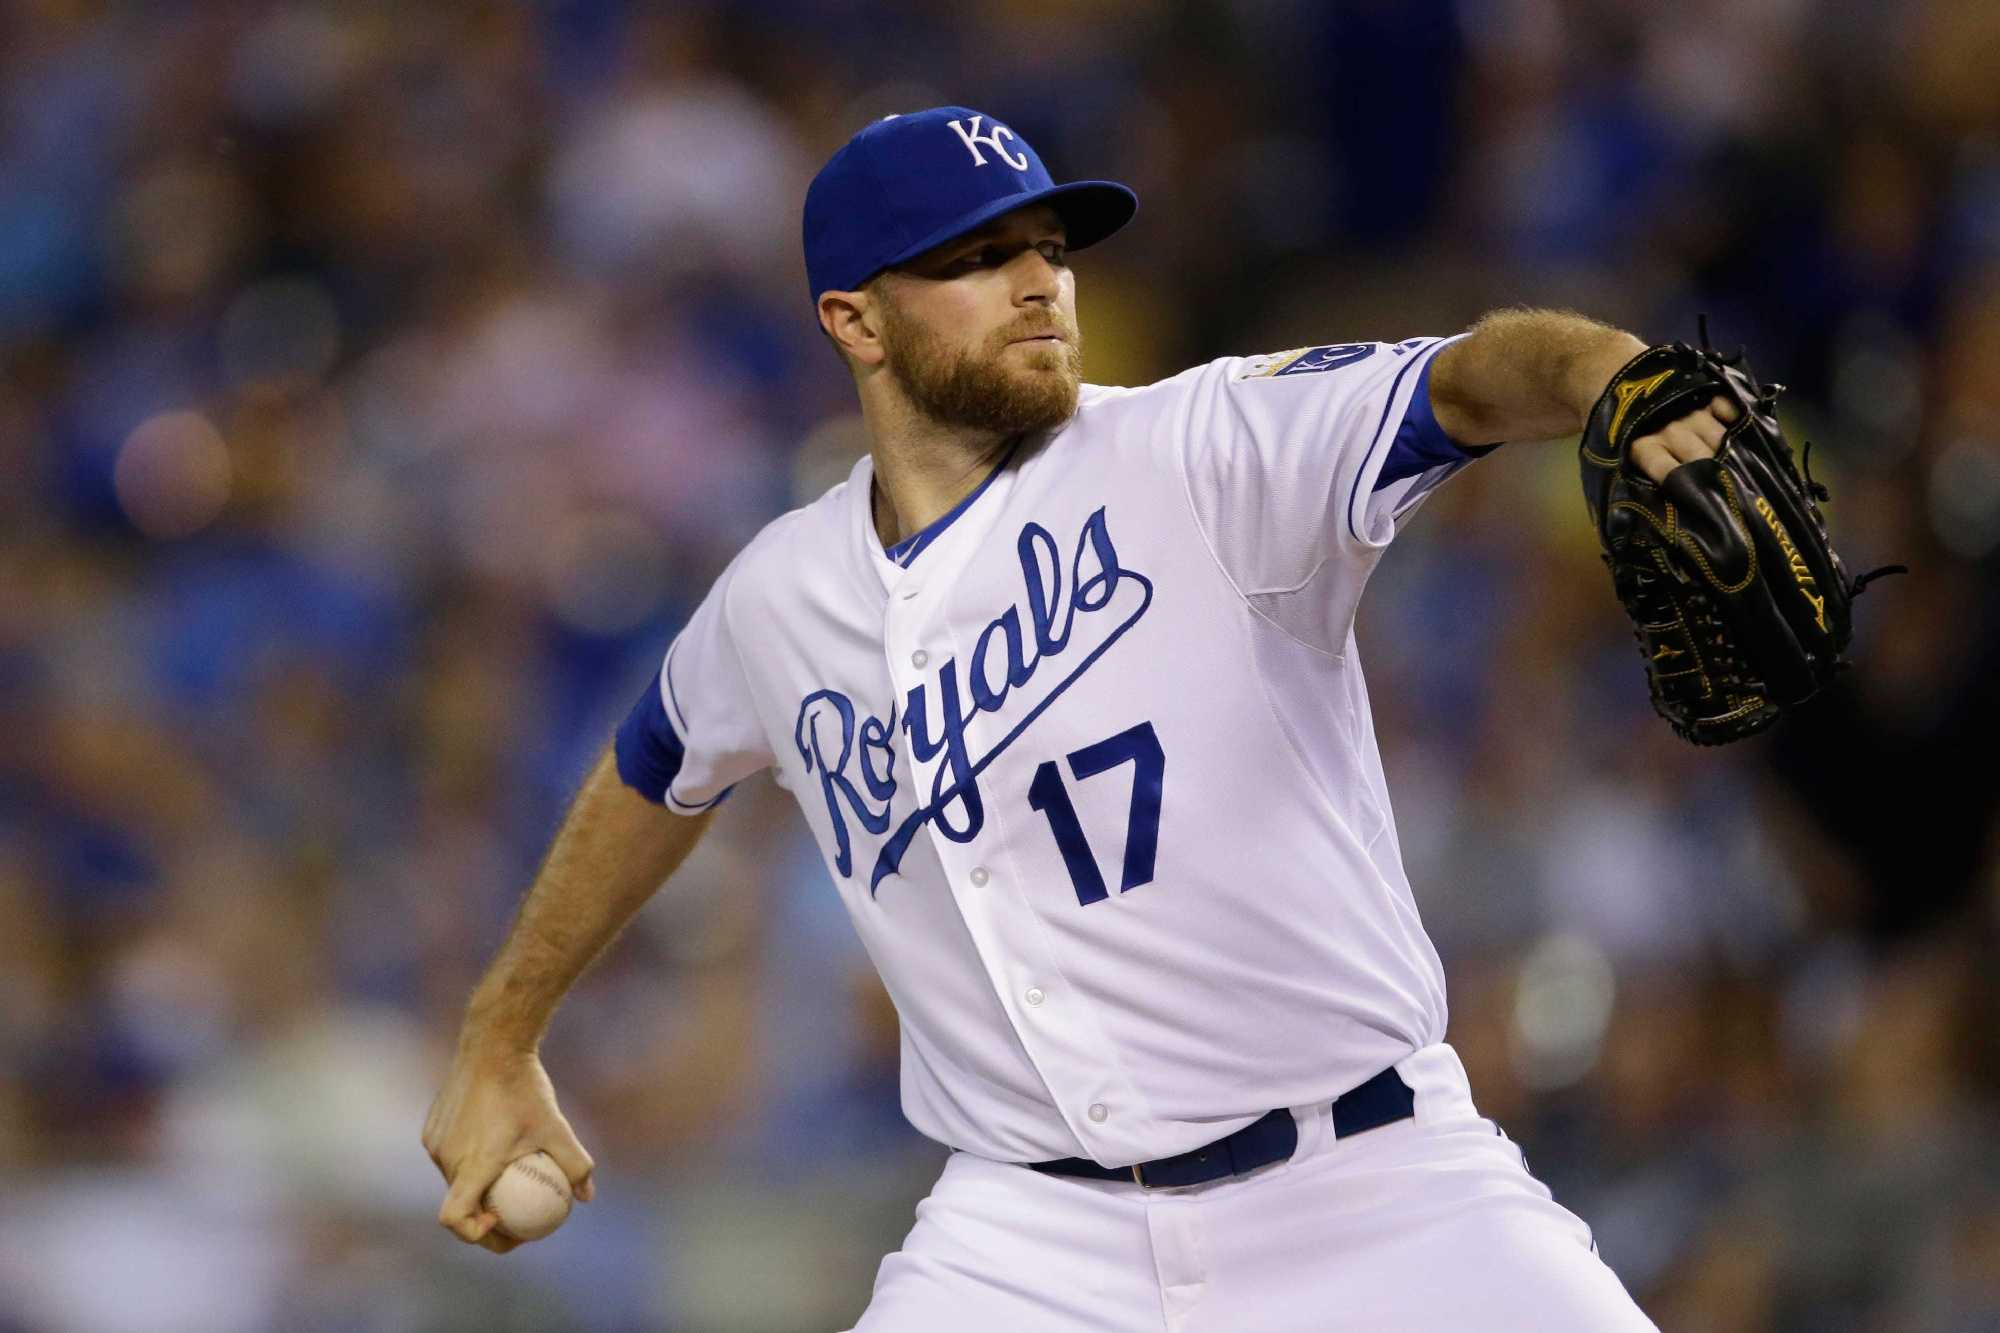 Colorado Rockies reportedly sign Wade Davis to three-year deal